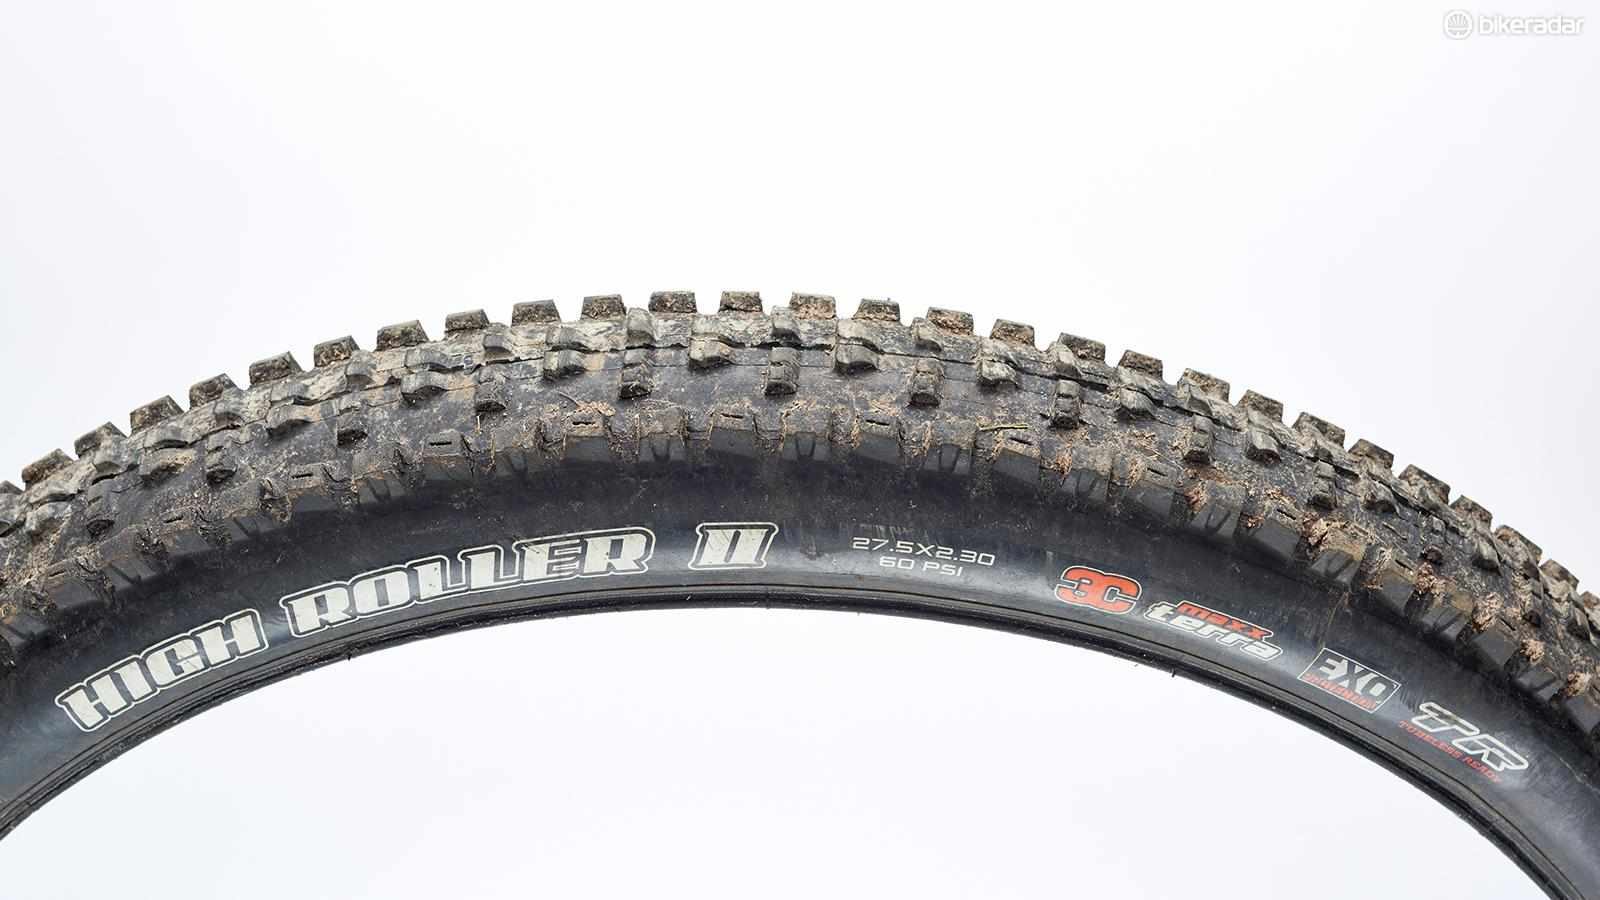 Maxxis's High Roller II EXO TR treads pack outrageous levels of traction